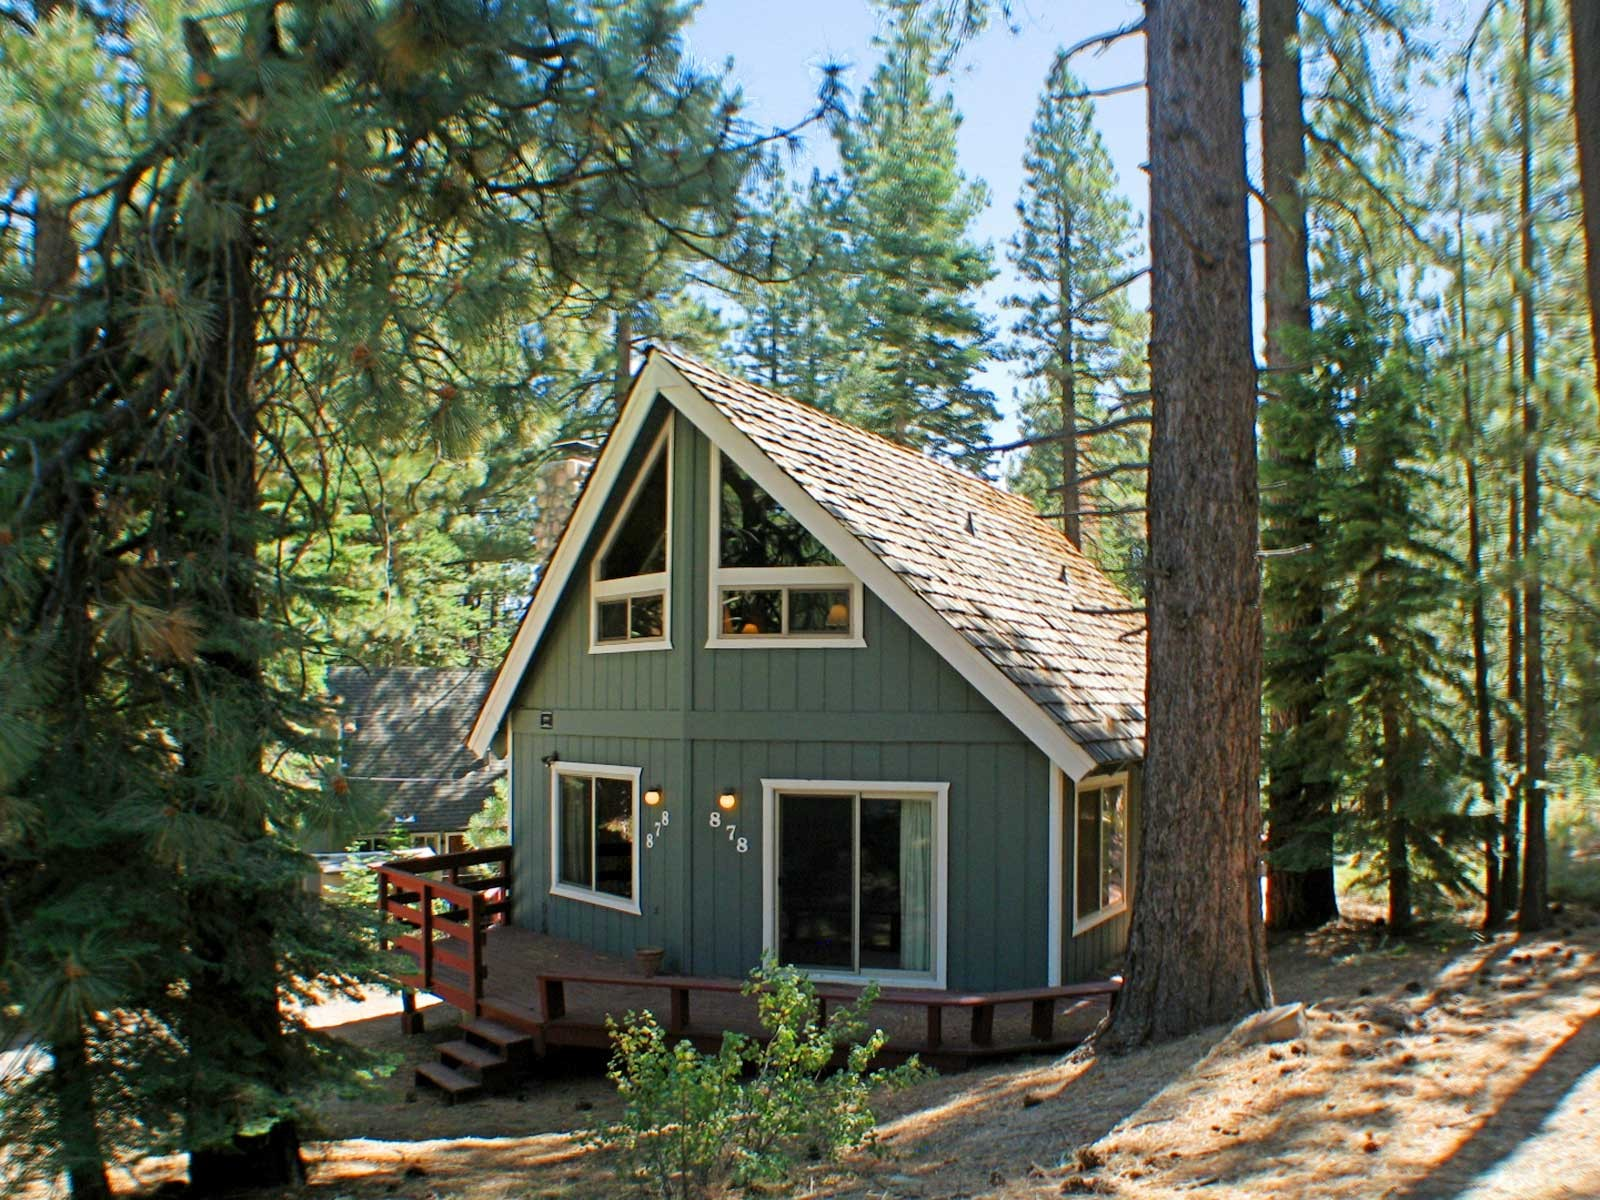 neighborhoods sample angeles yard back real cabins tahoe lake south al close los house estate